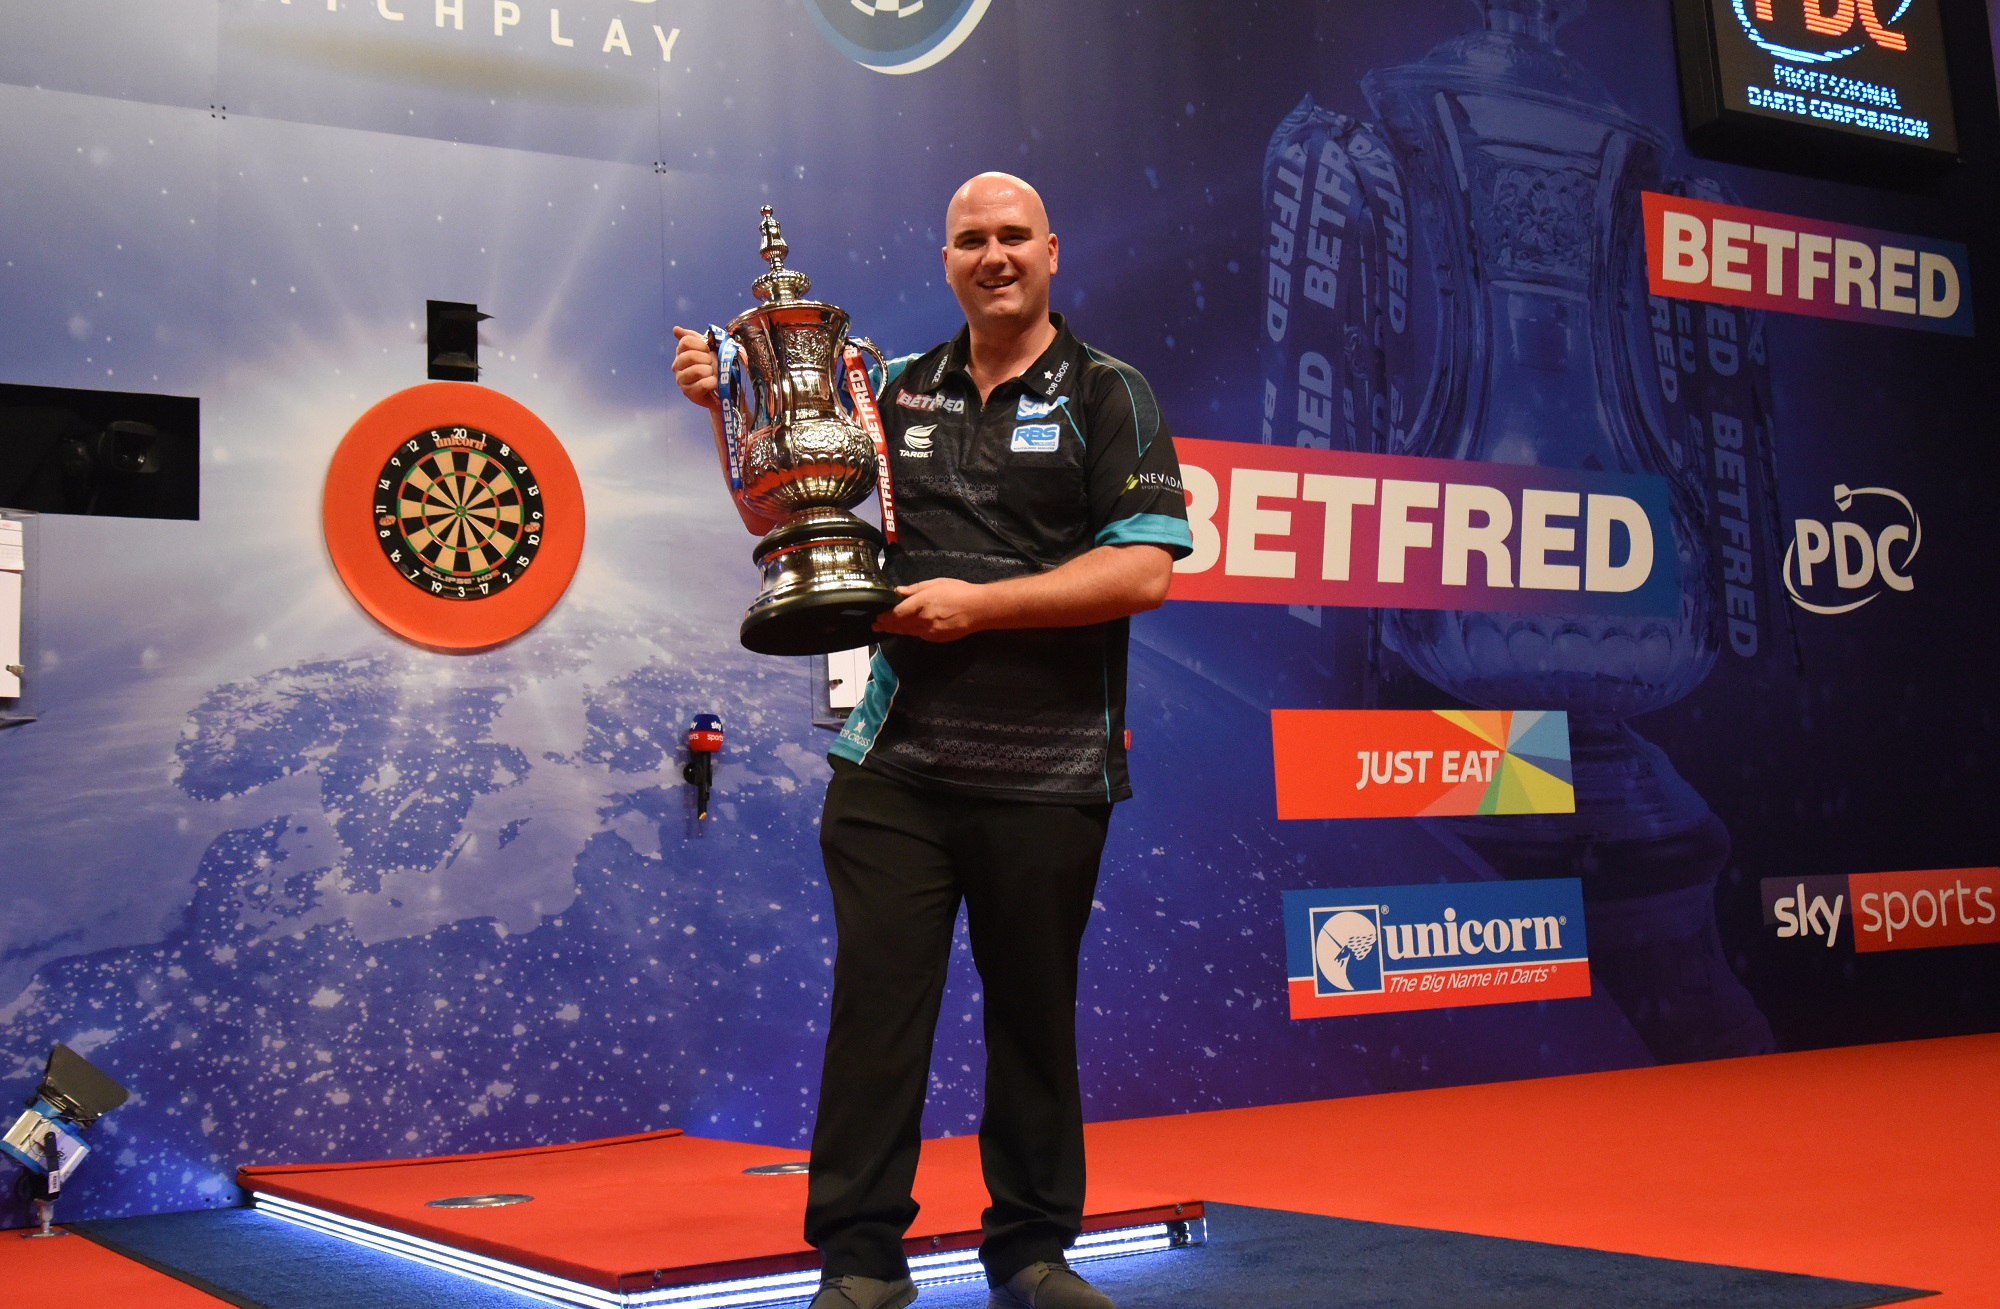 Favourites For The Betfred World Matchplay